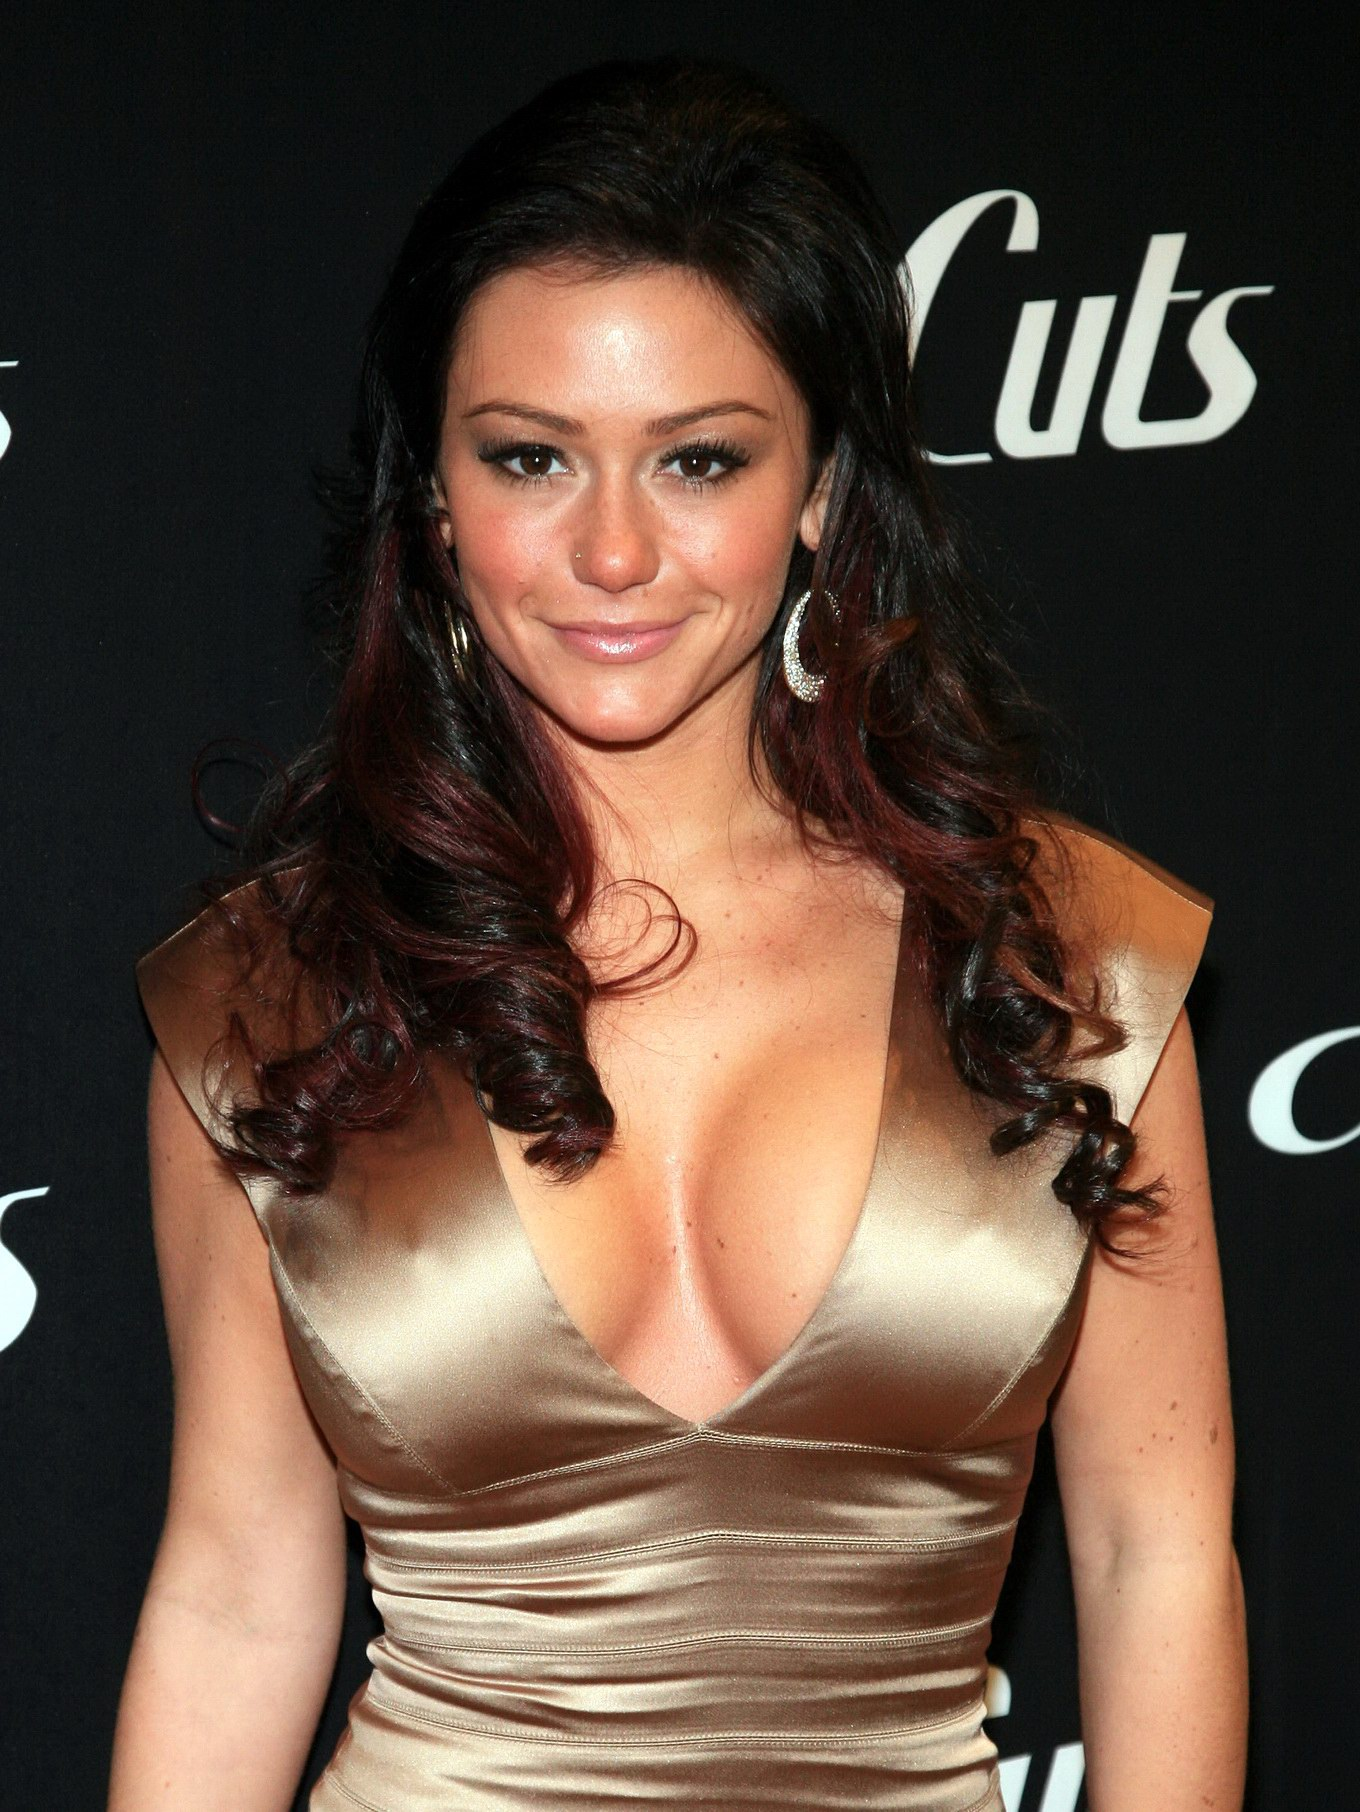 celebs-naked-galleries-head-over-heals-female-domination